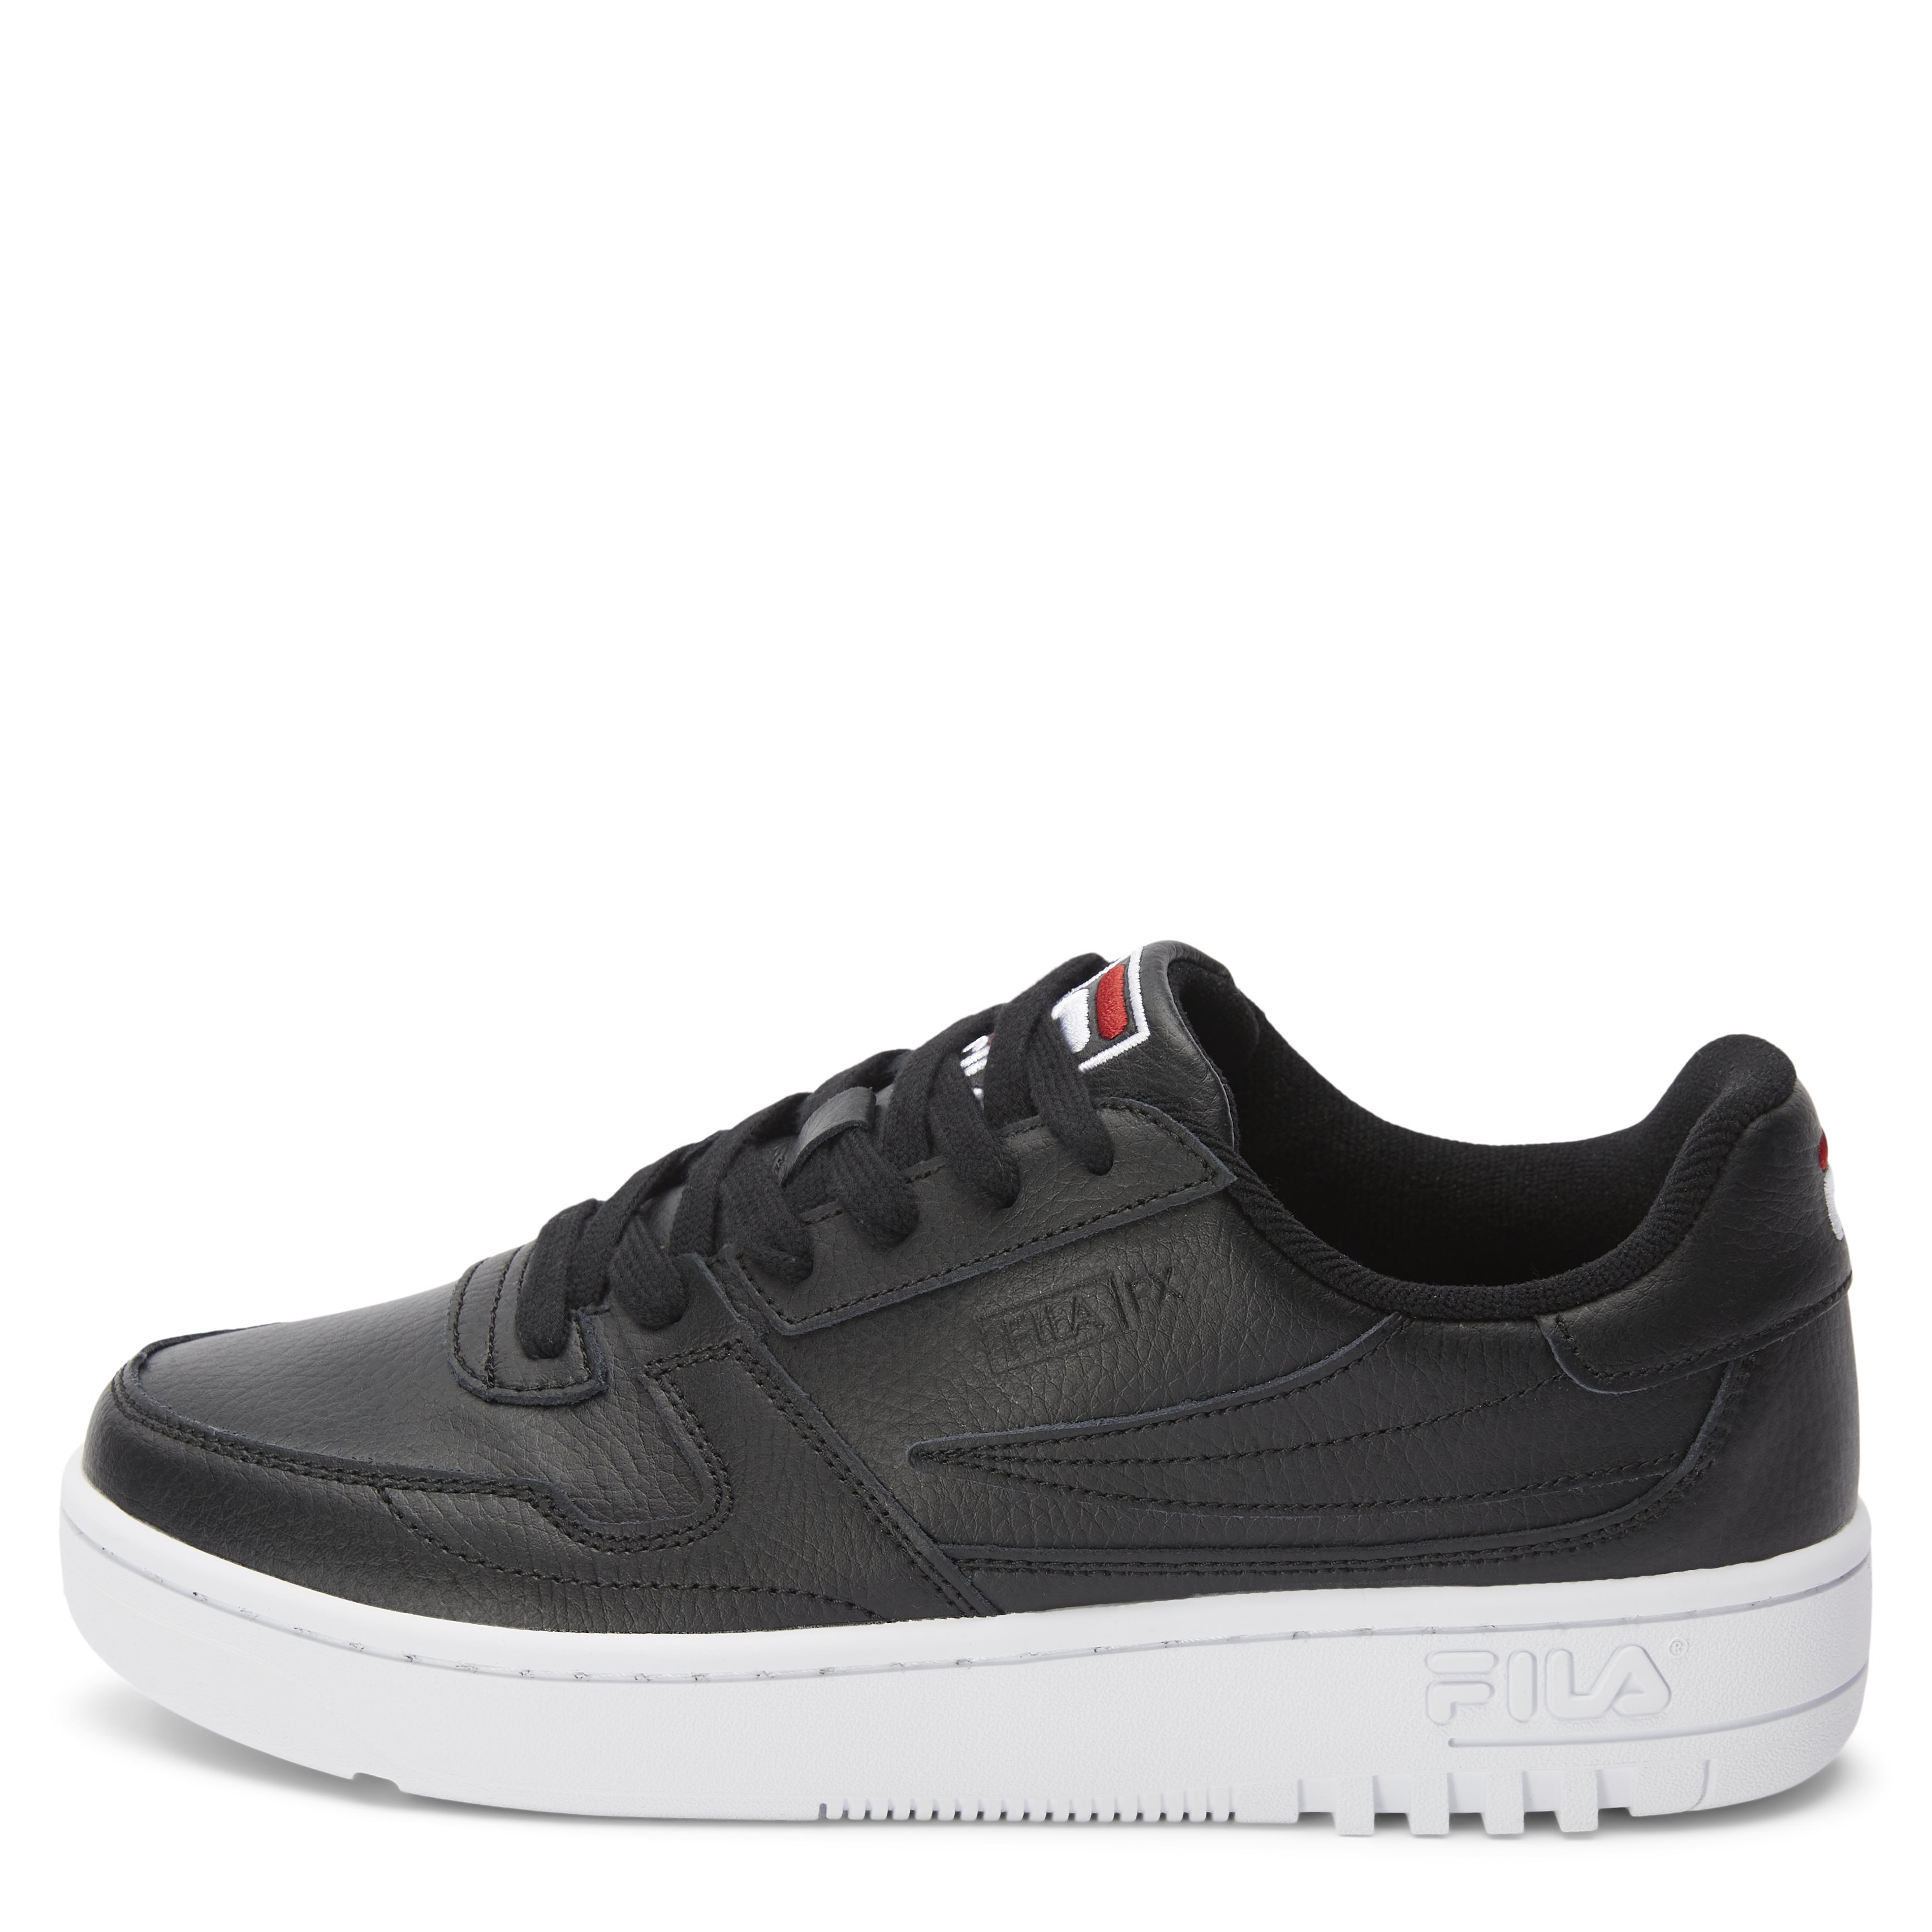 Fxventuno L Low Sneaker - Sko - Sort